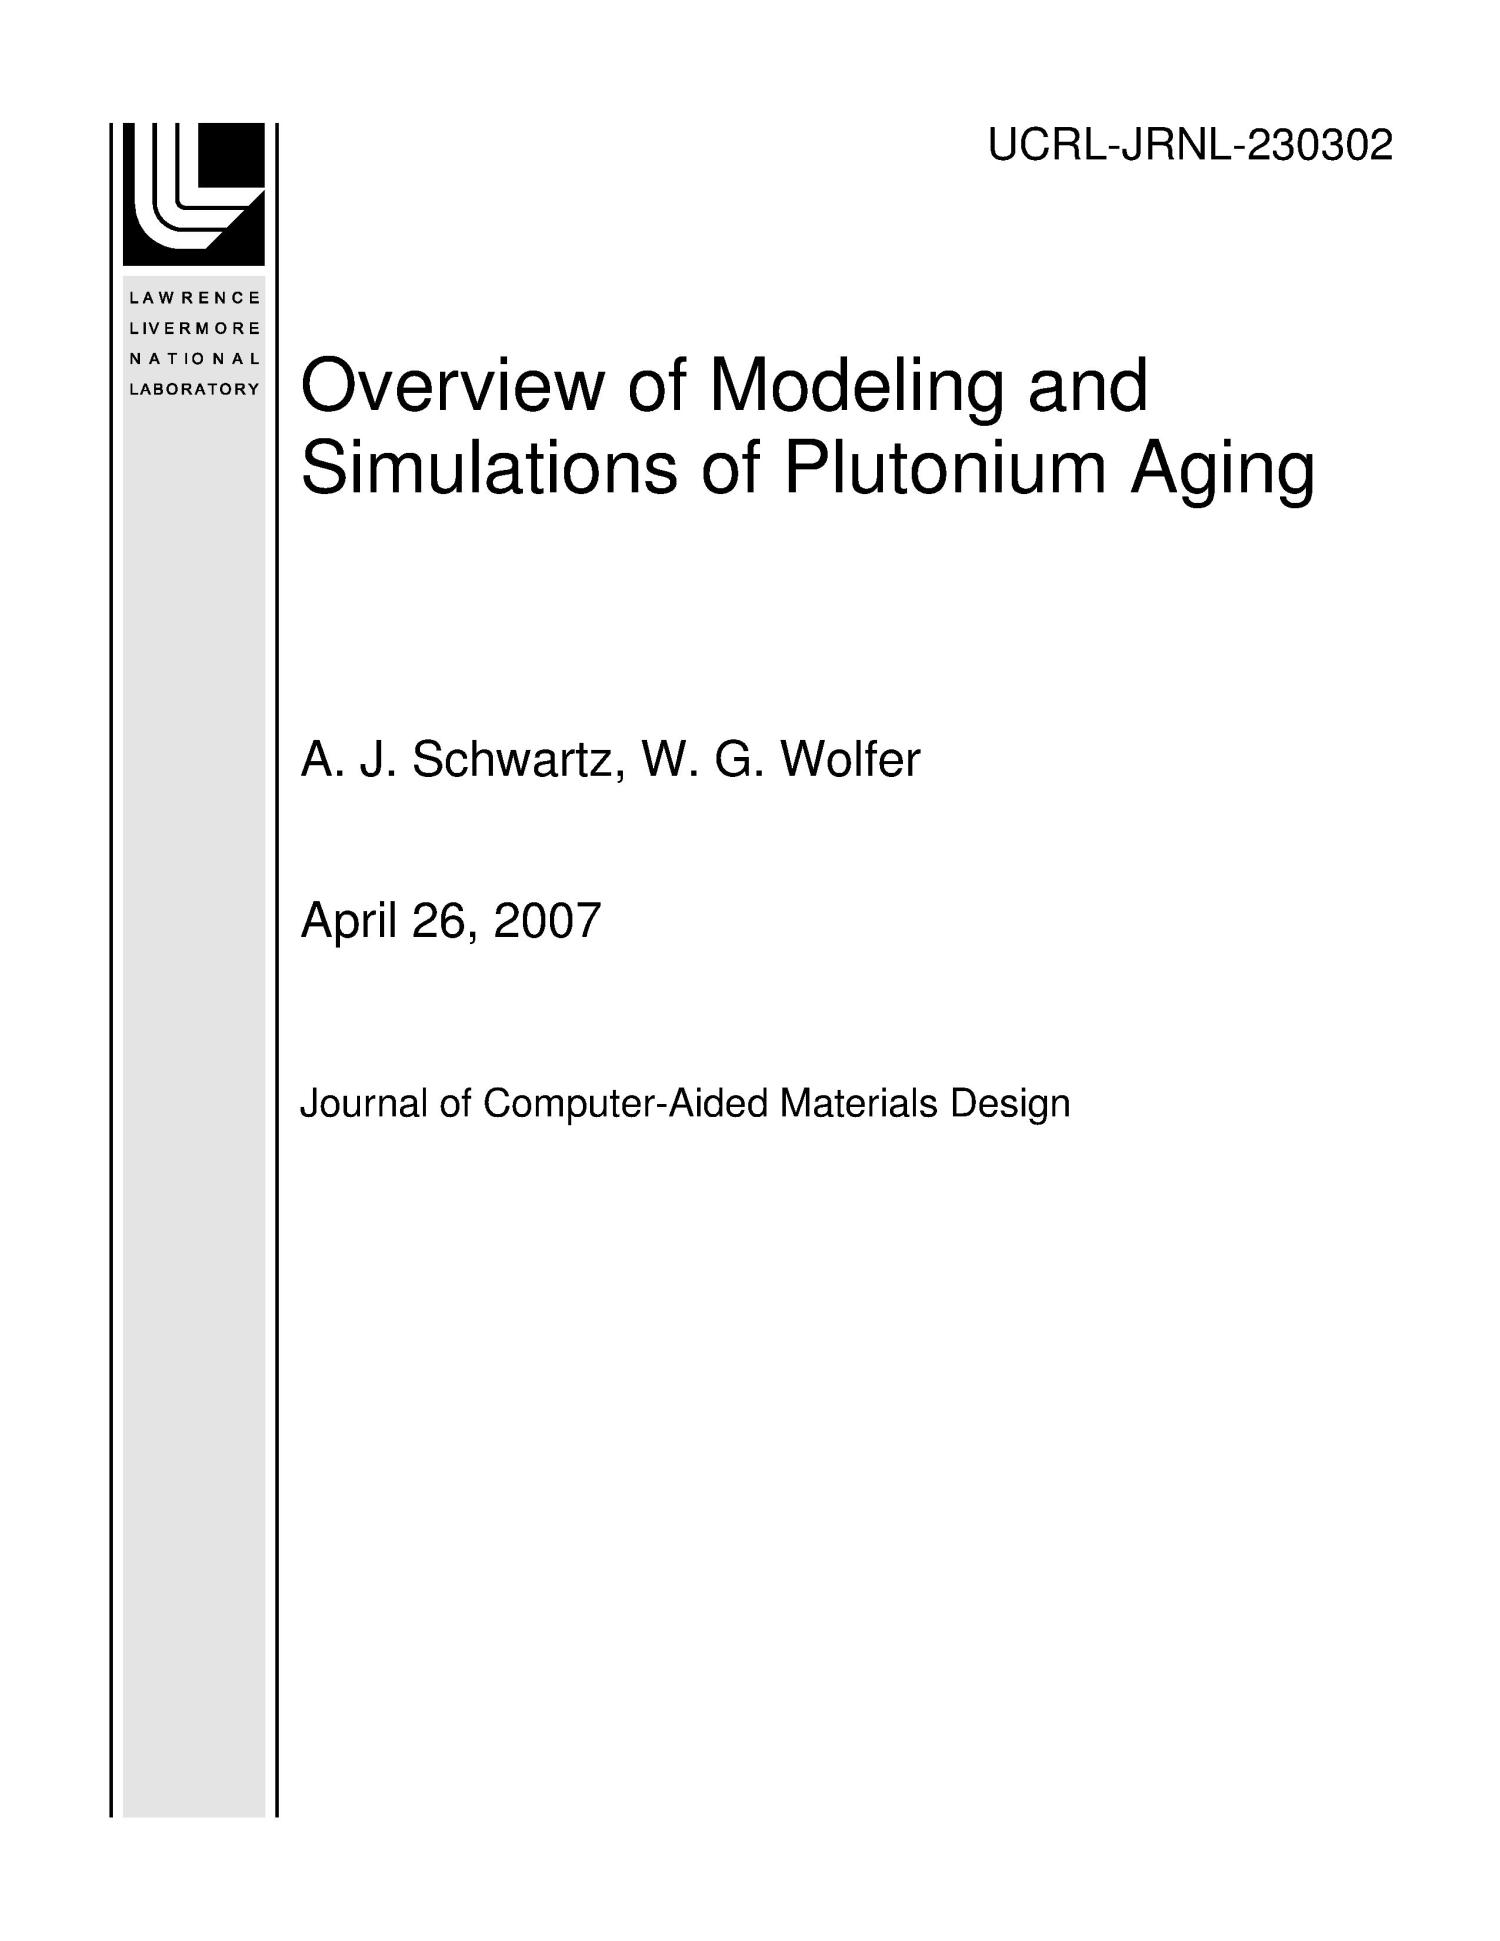 Overview of Modeling and Simulations of Plutonium Aging                                                                                                      [Sequence #]: 1 of 7